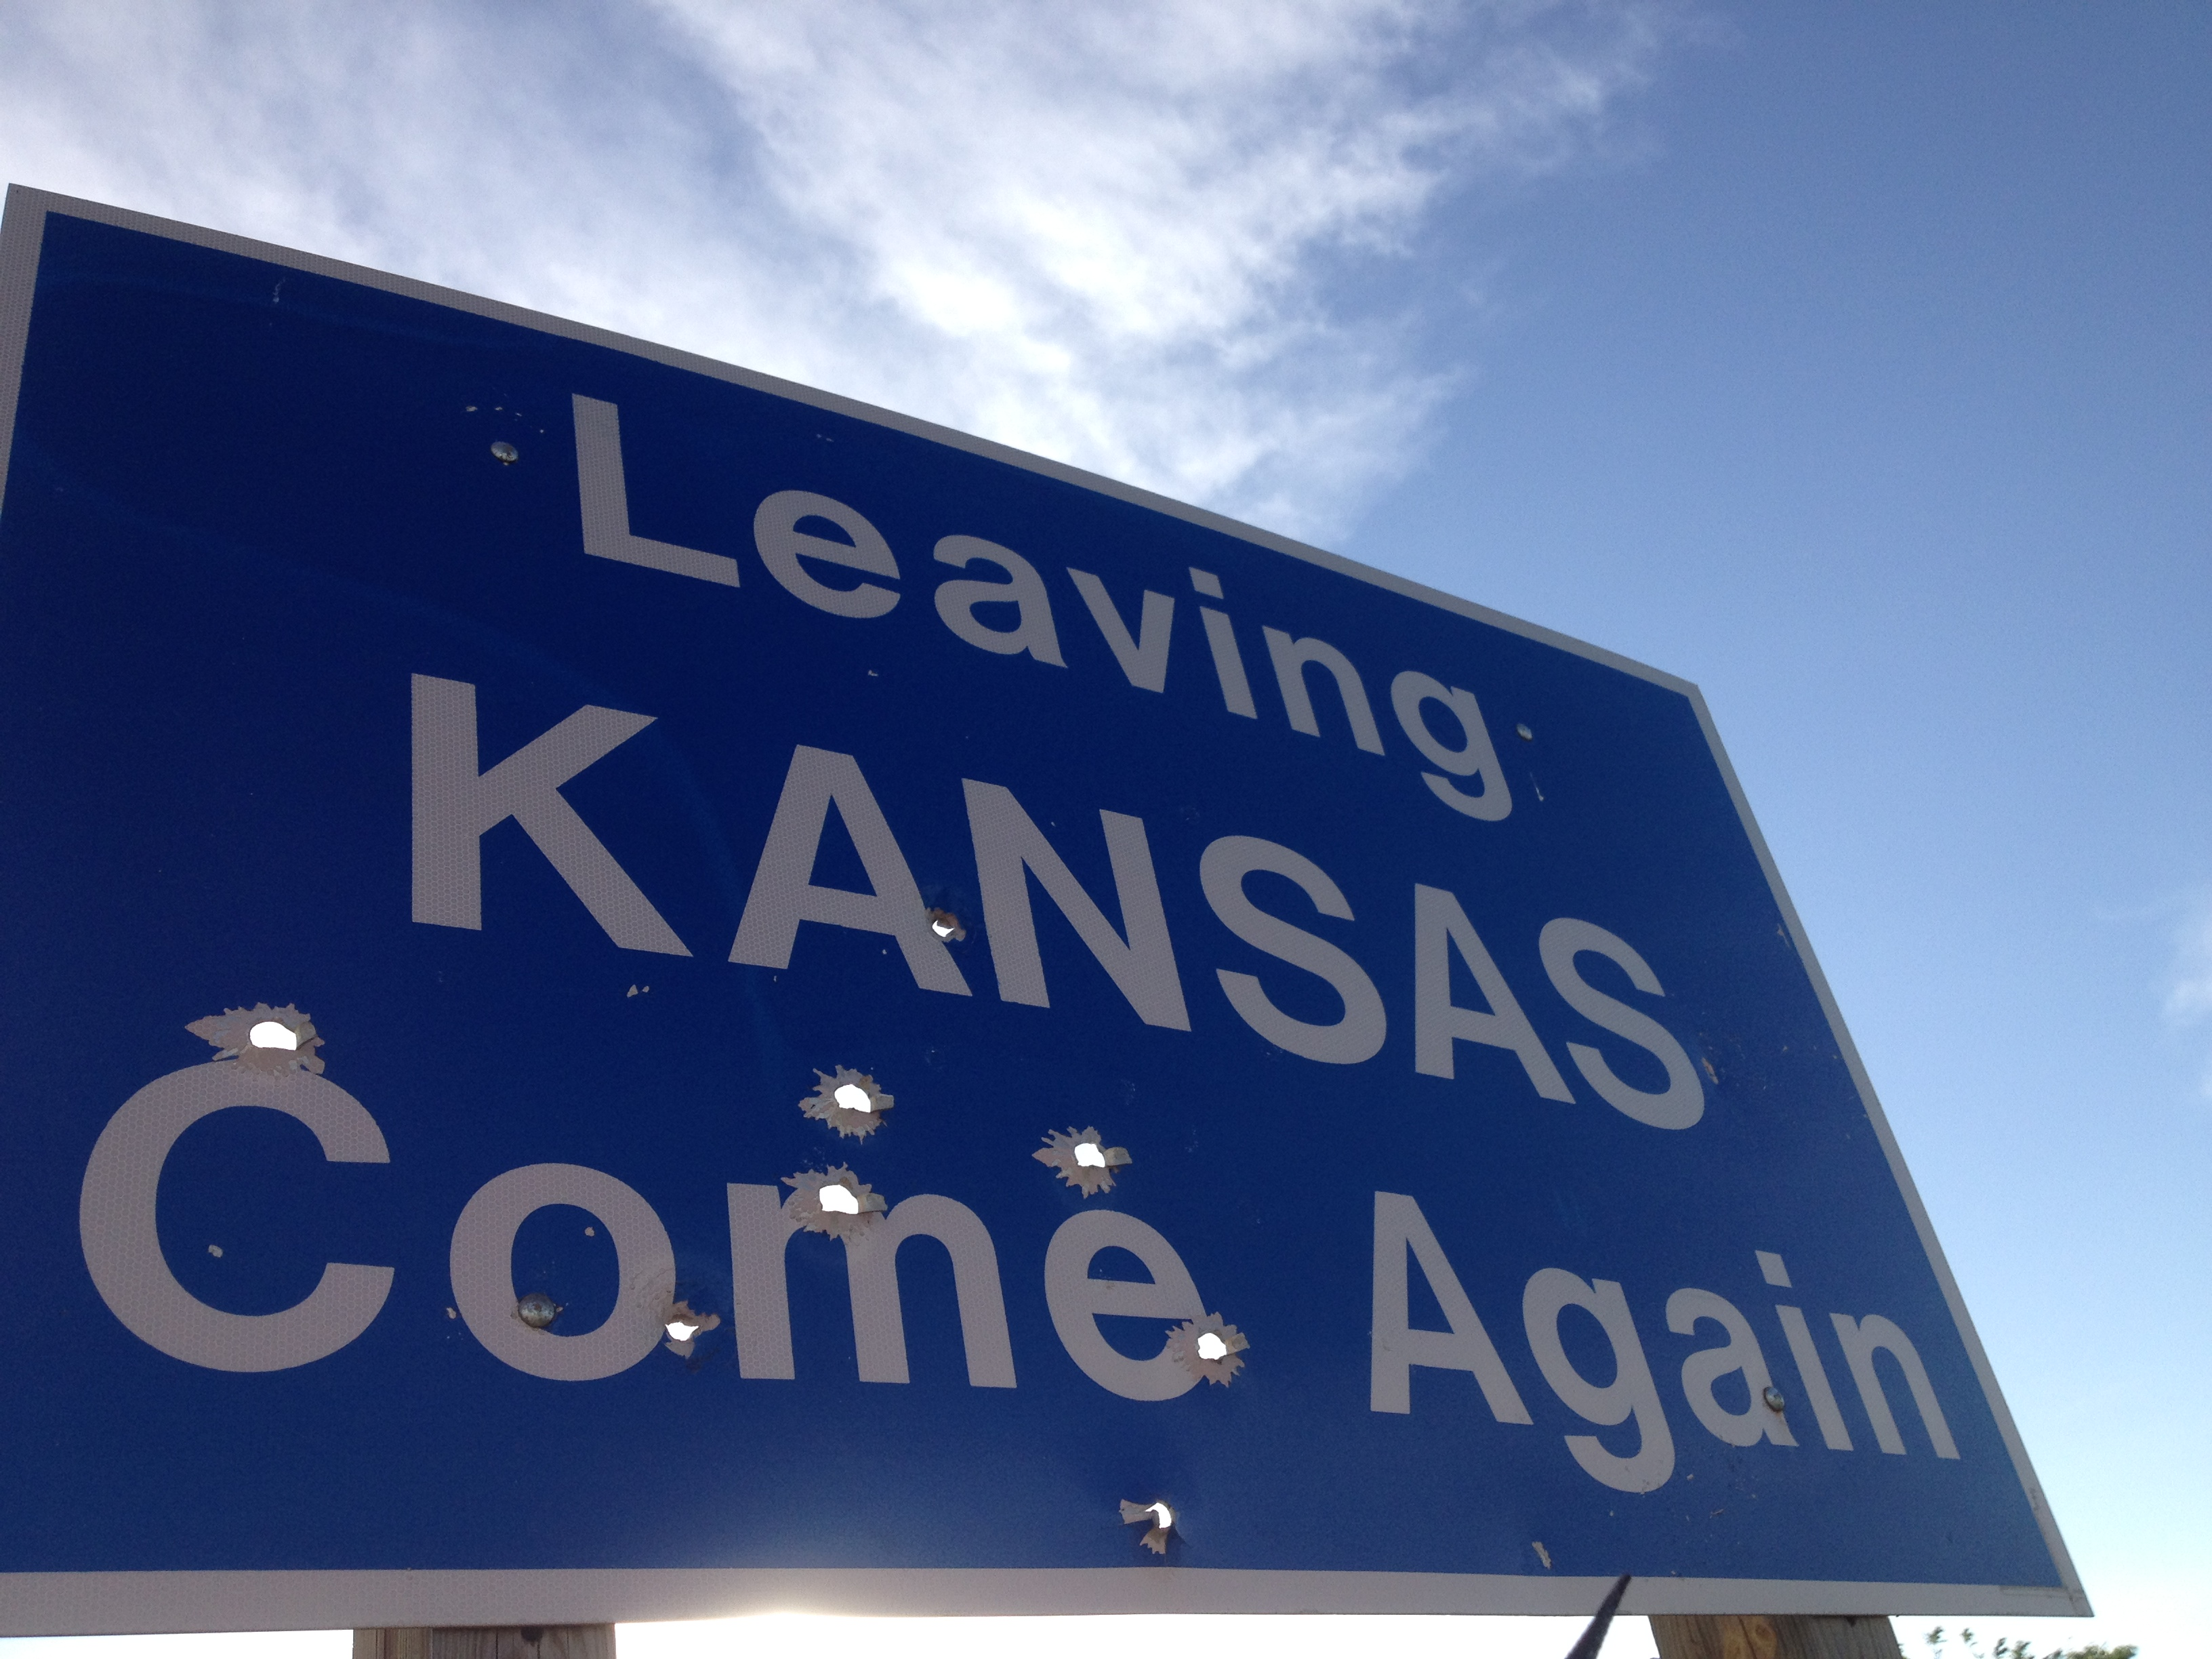 Angry bullet holes? Some Kansas residents are fed up with the way things are going in the Sunflower State. (Photo by J. Schafer)